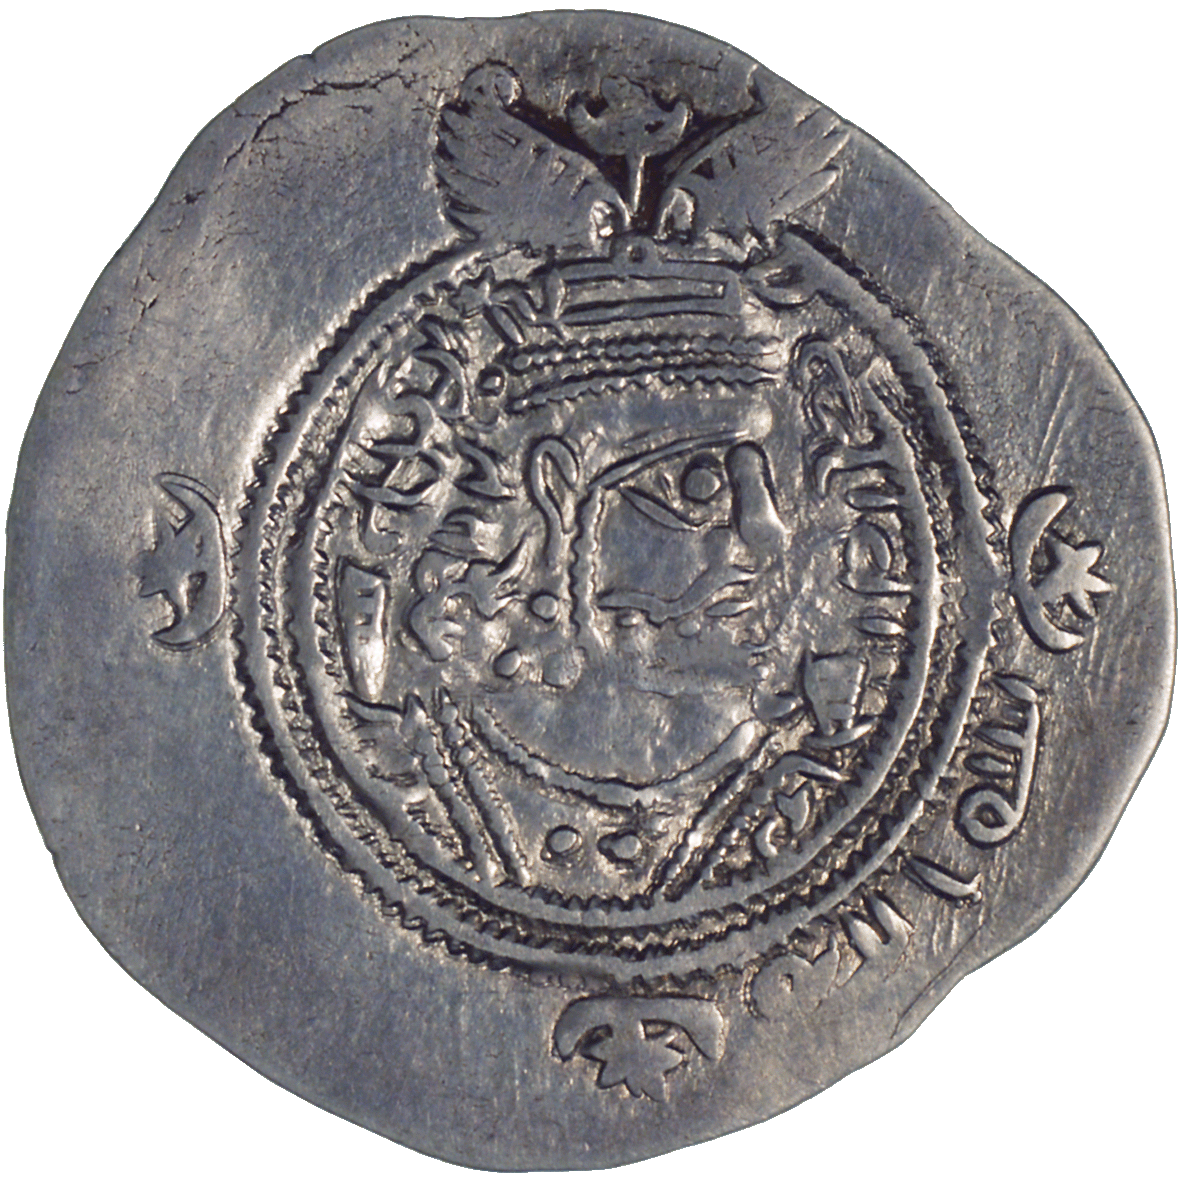 Arab-Sassanids, Drachm in the Name of Yazdegerd III, 31 AH (obverse)